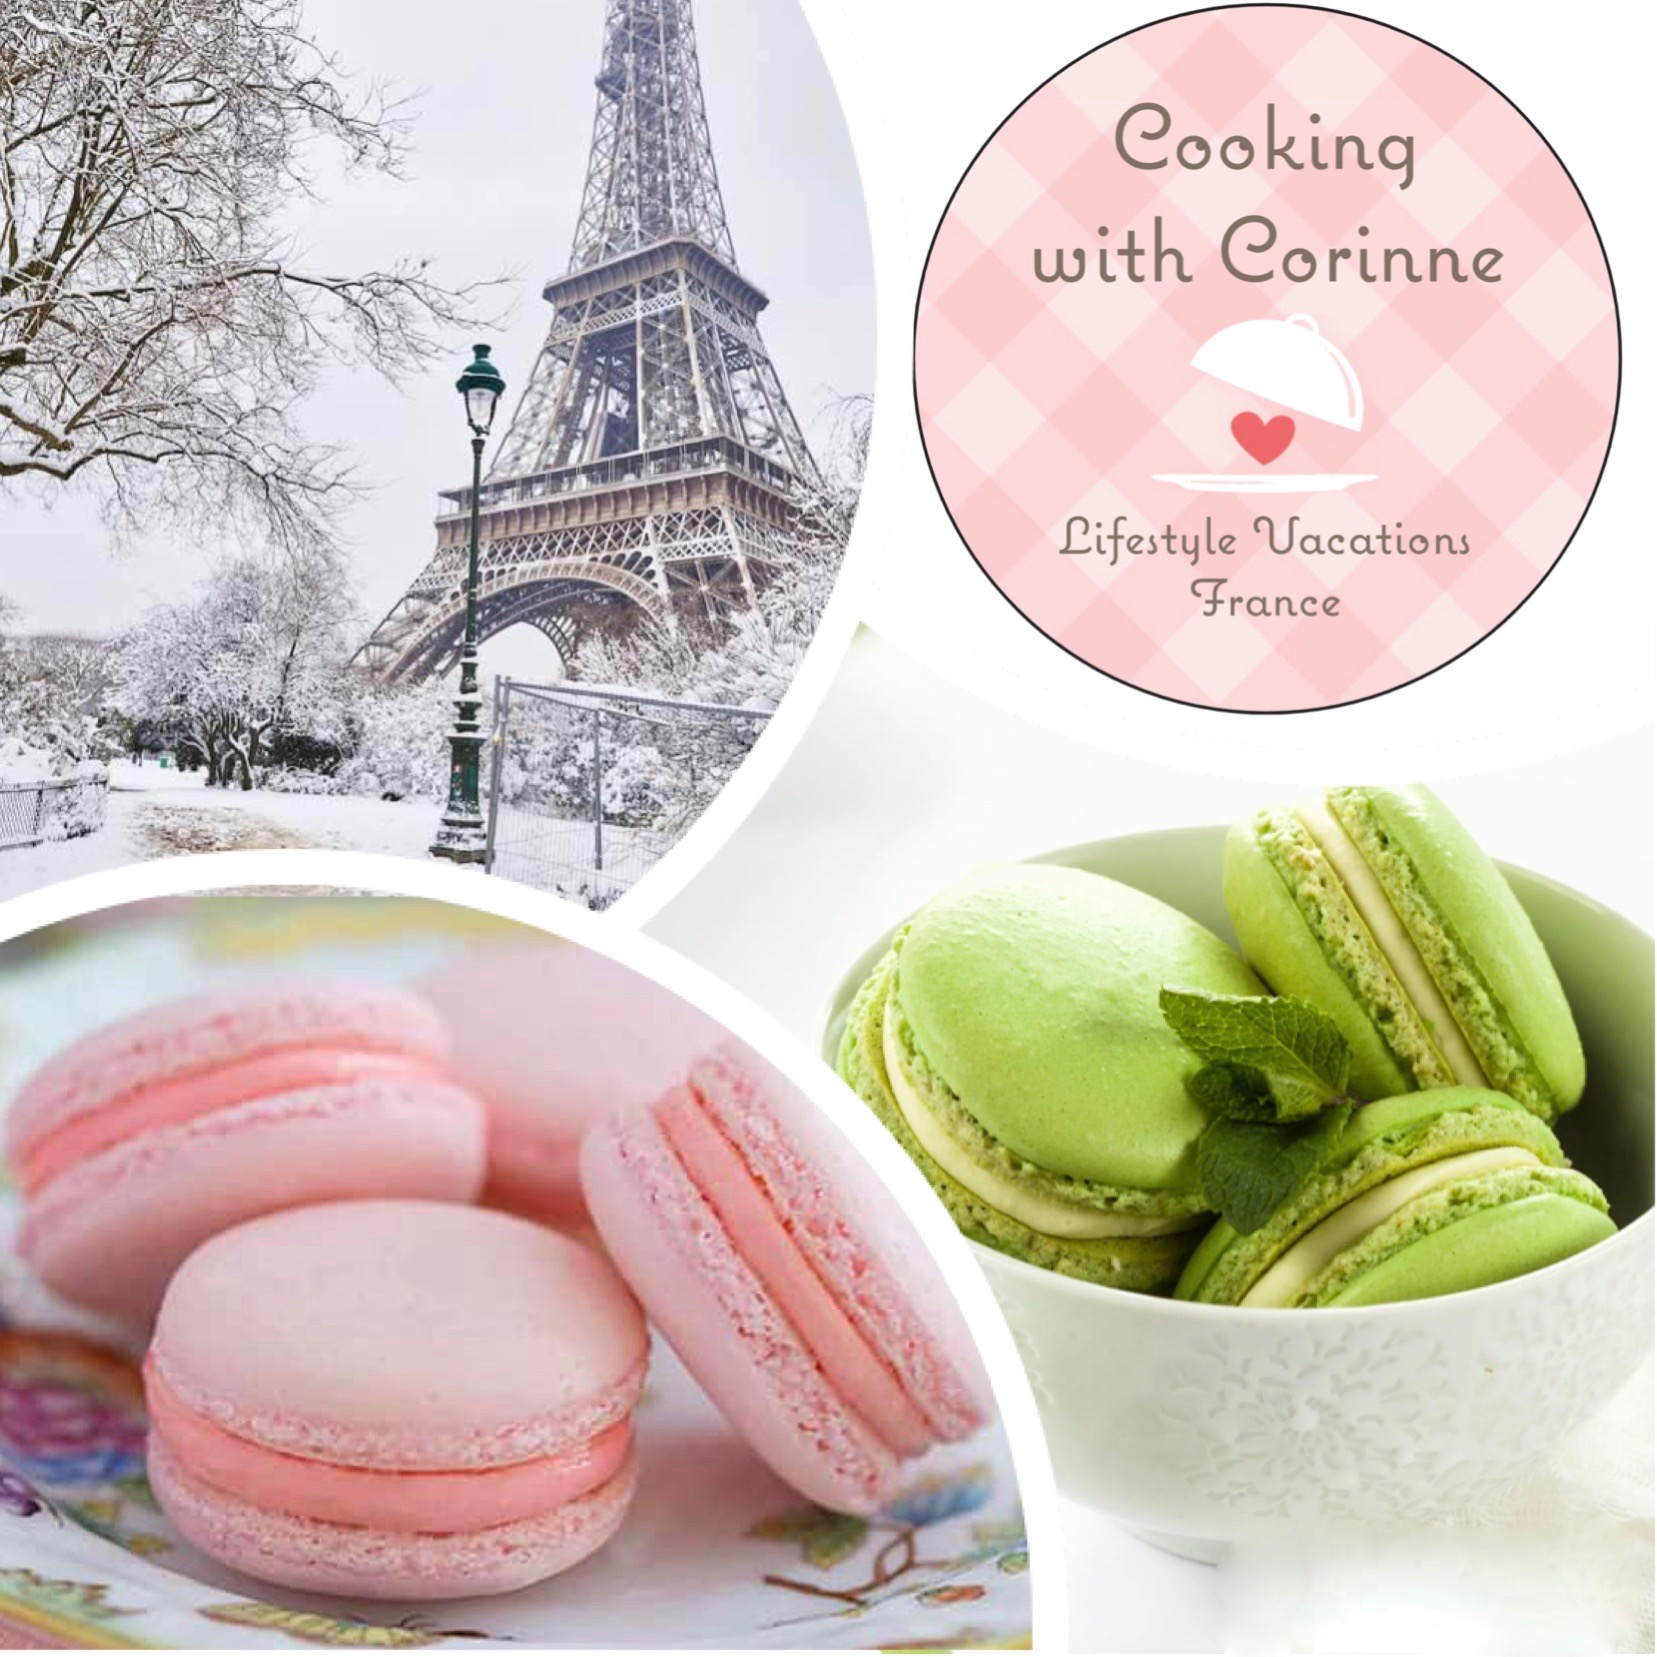 Baking with Corinne Lifestyle Vacations France